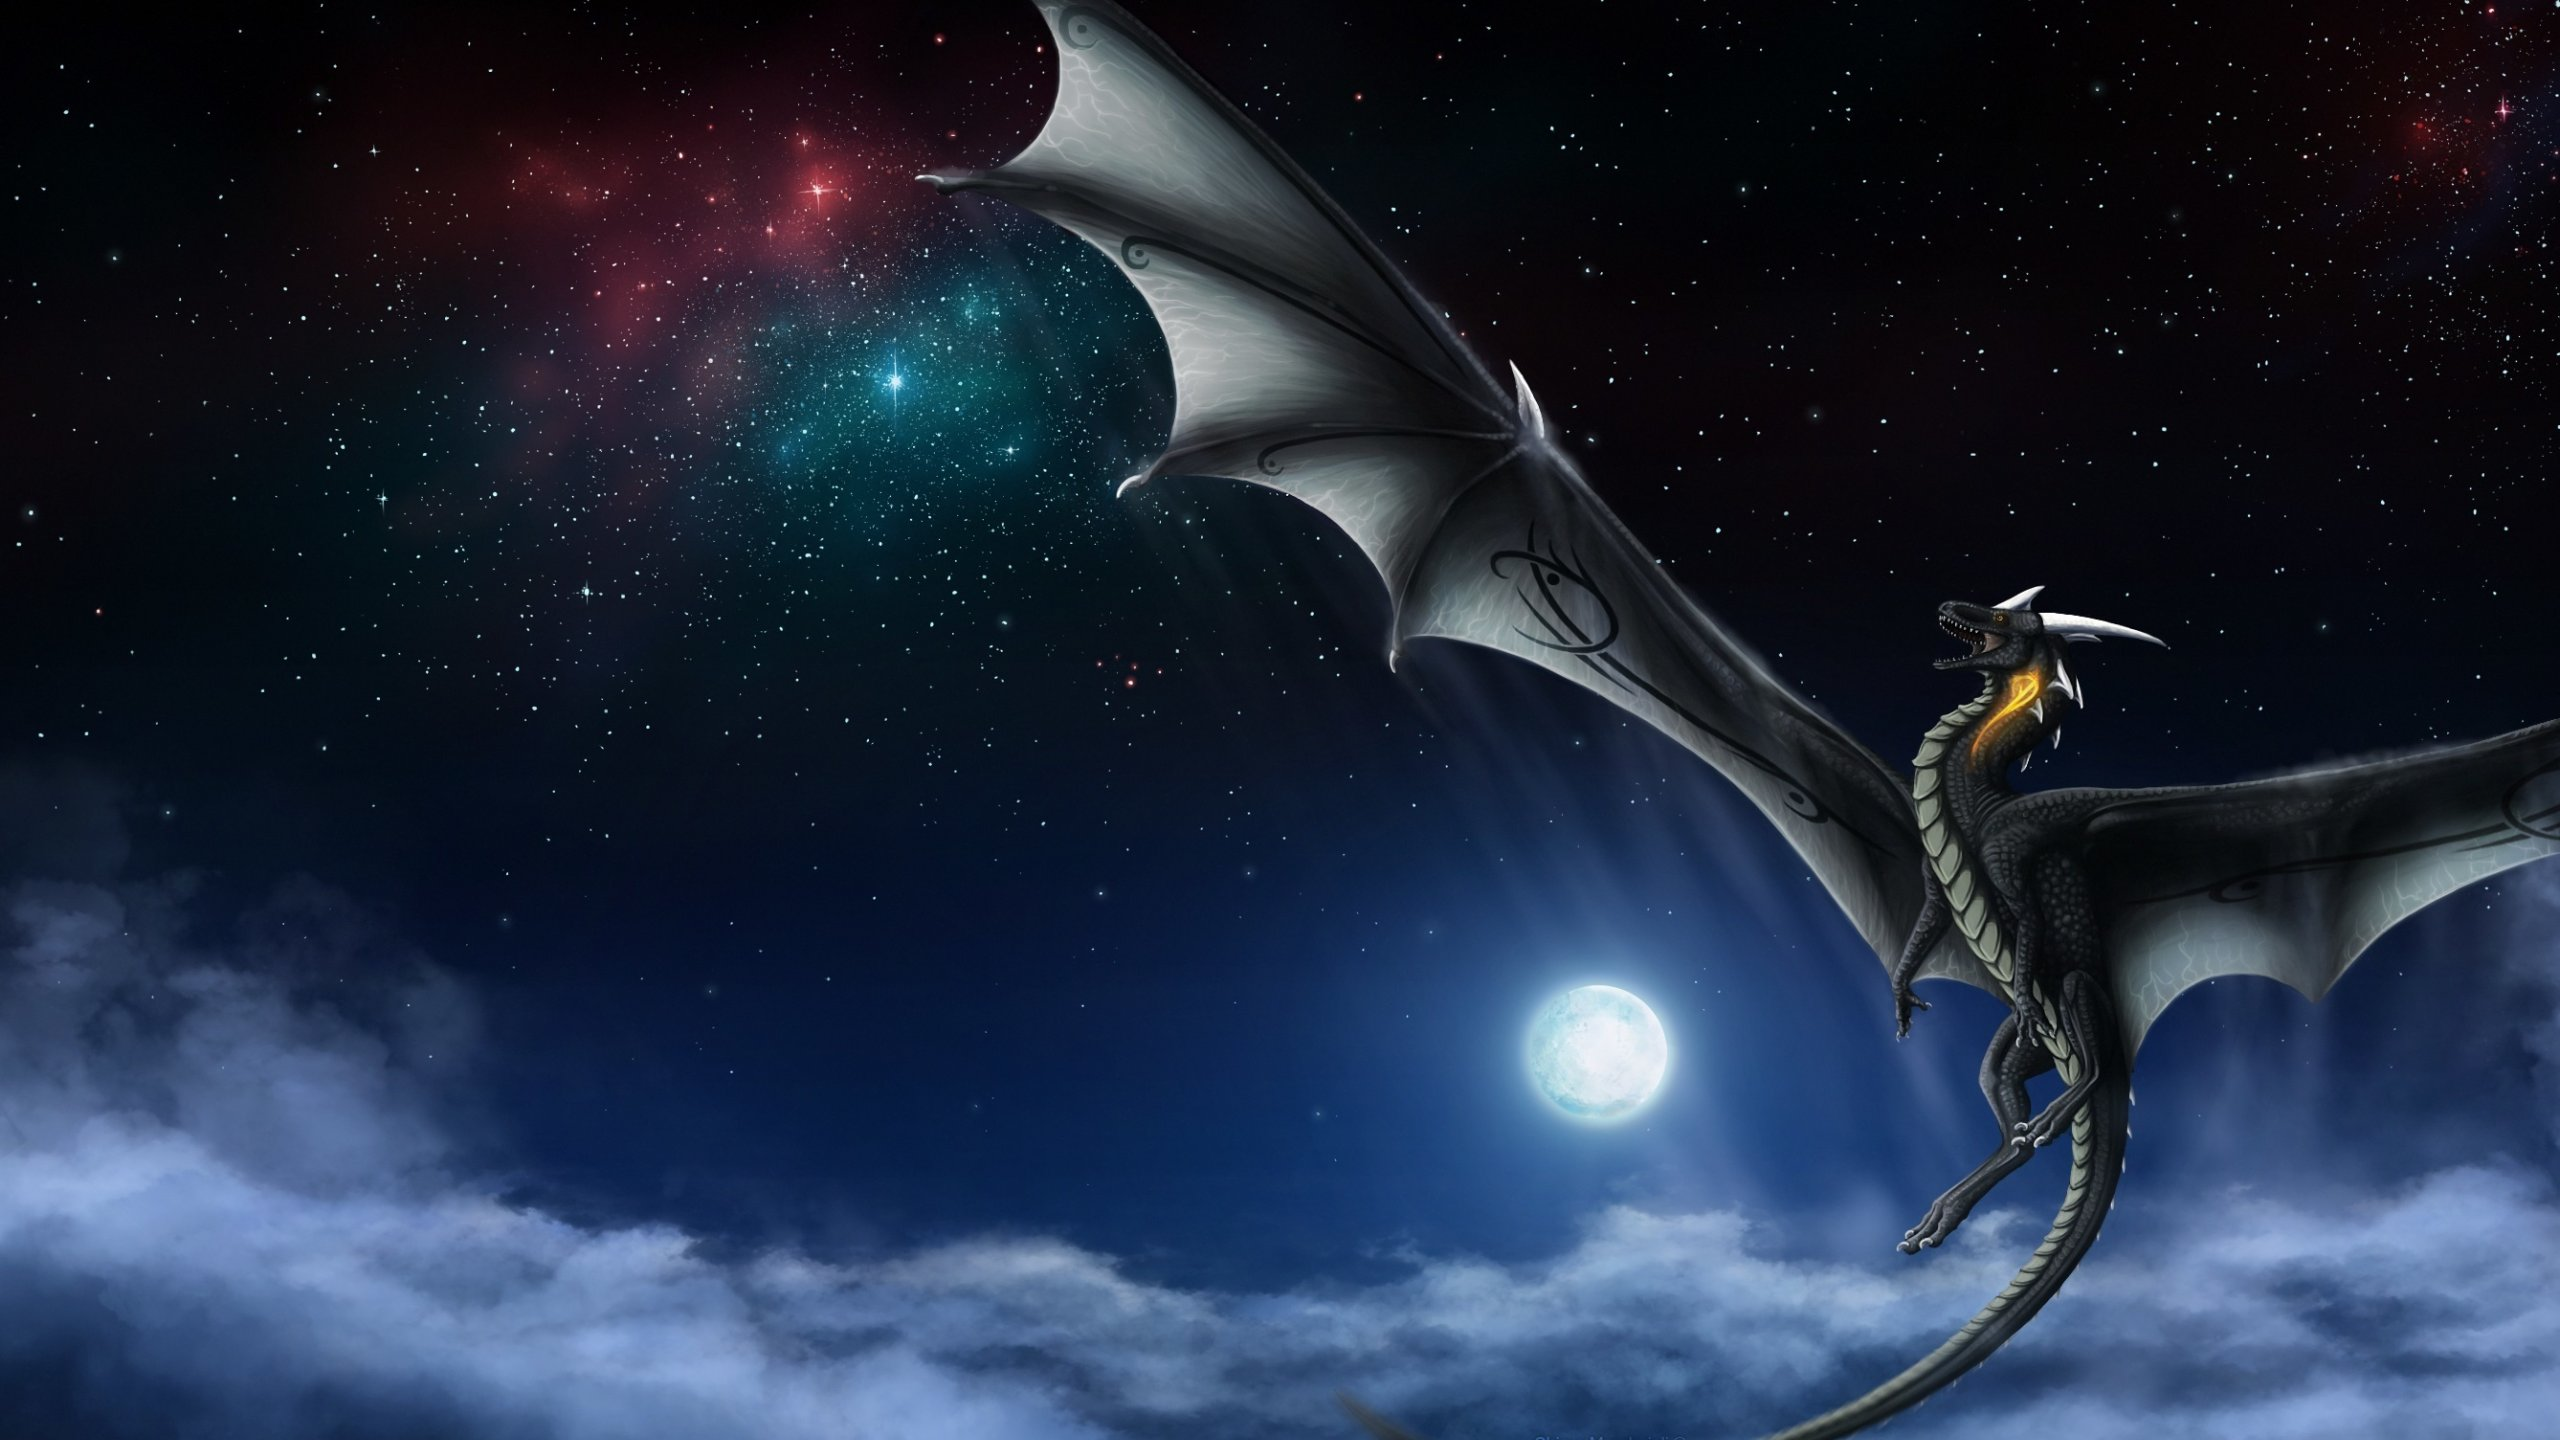 2560x1440 Fantasy images Dragon HD wallpaper and background photos (37073164)